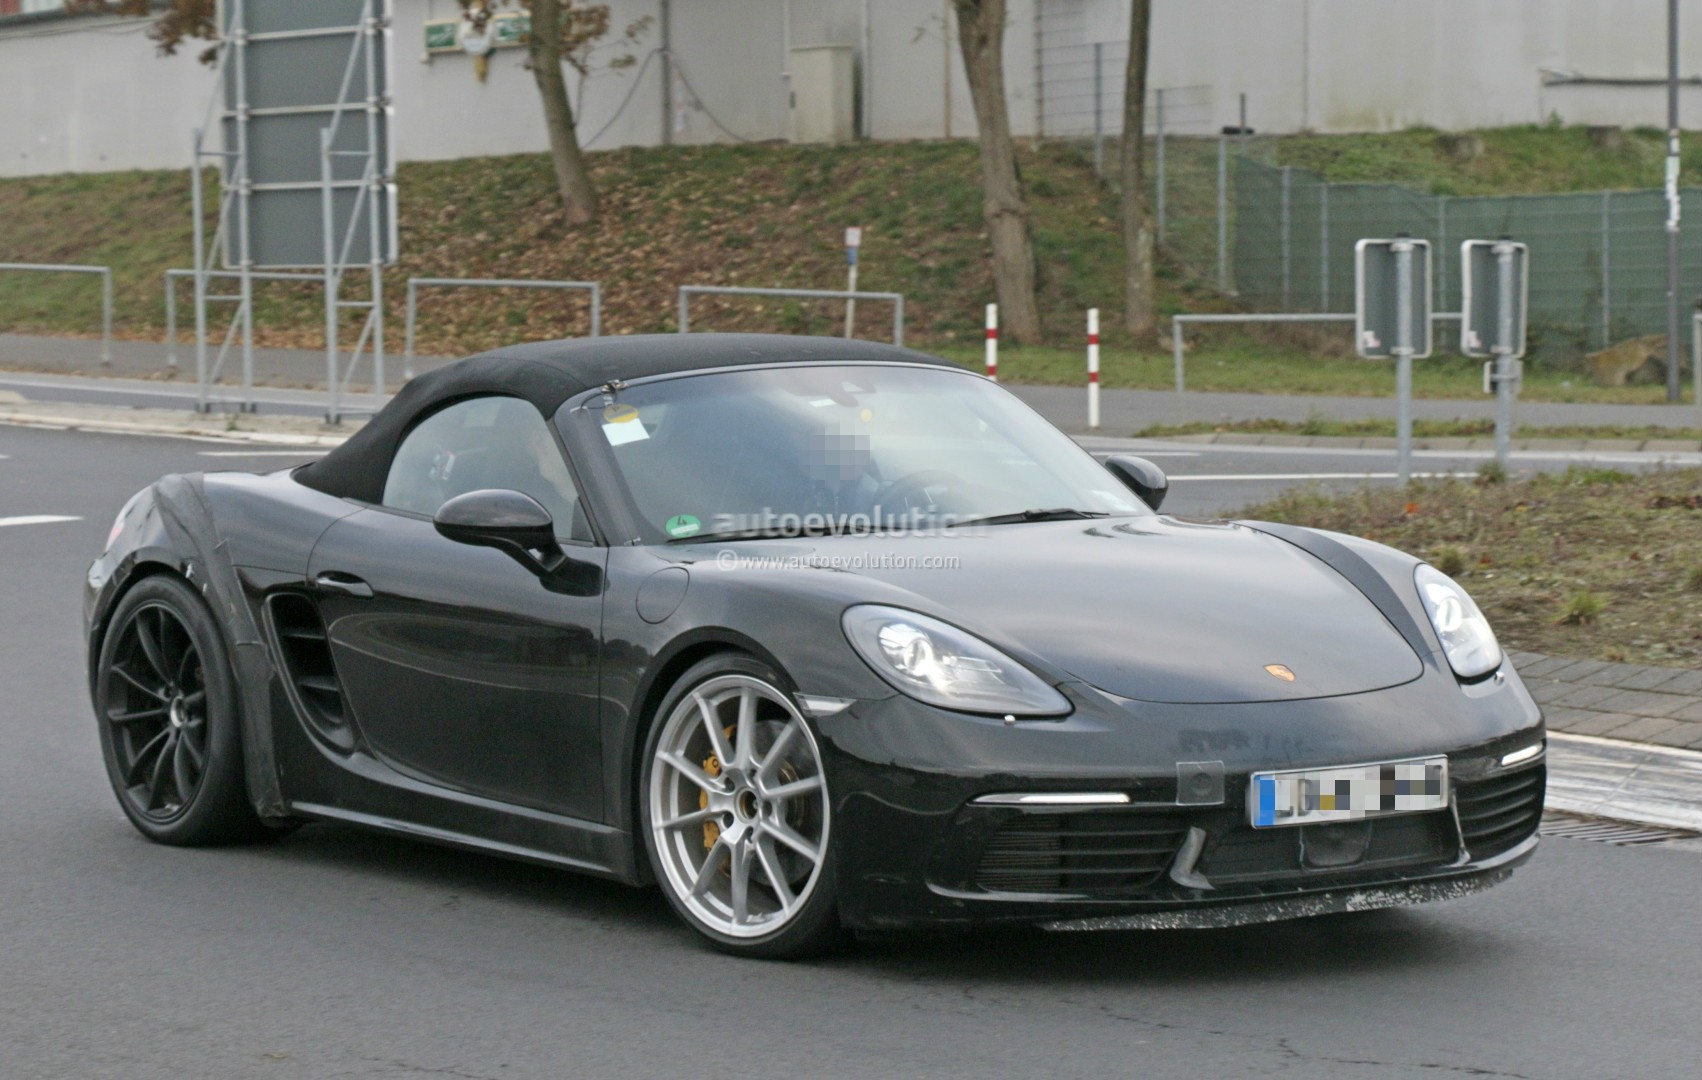 porsche 718 boxster gts spy shots porsche 718 forum. Black Bedroom Furniture Sets. Home Design Ideas